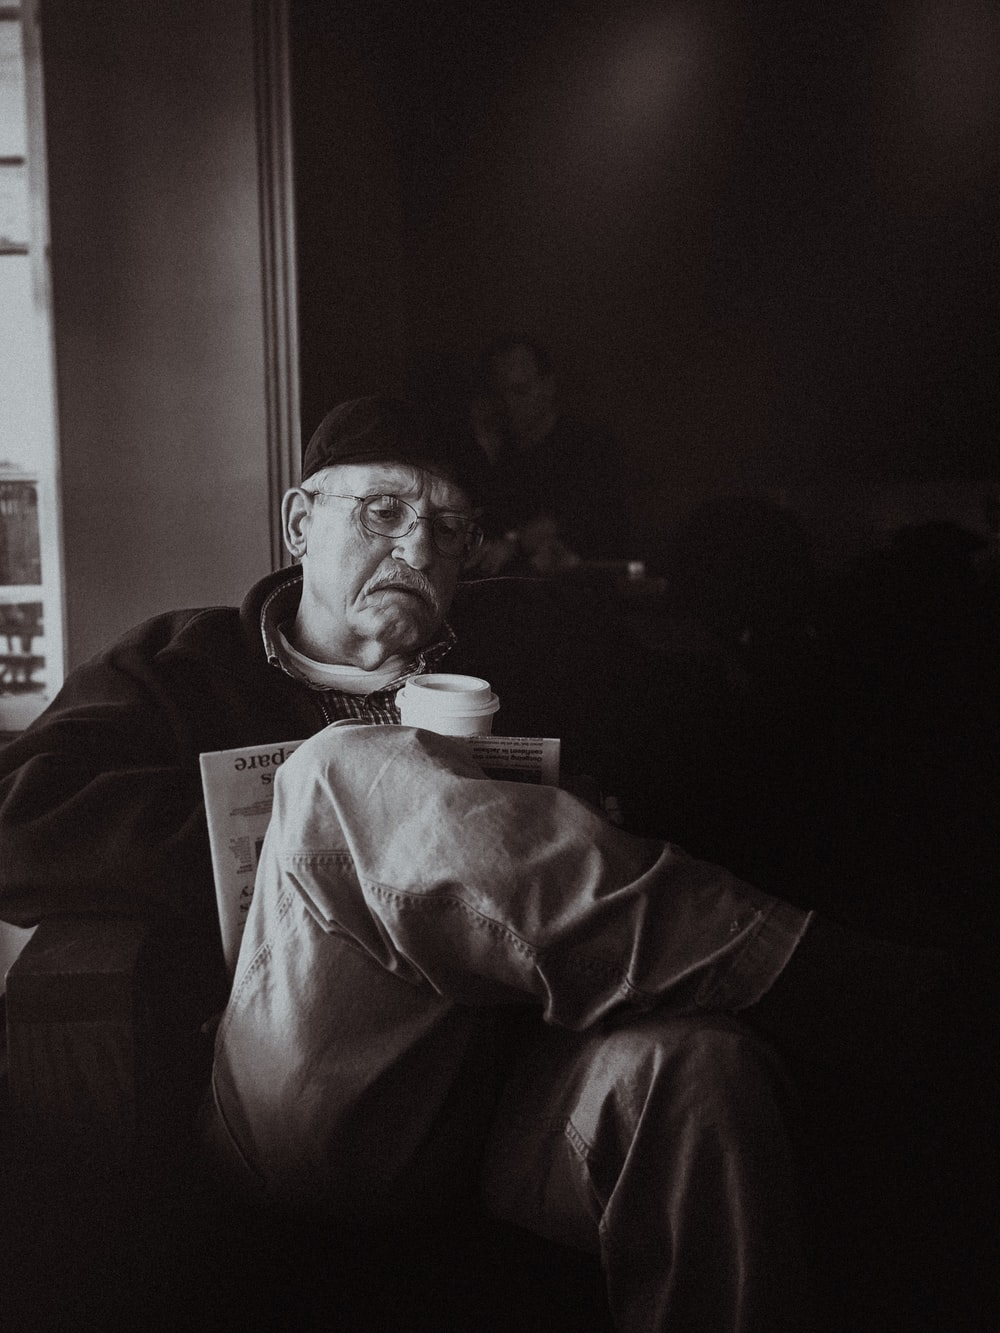 grayscale photography of man sitting on sofa chair holding coffee cup